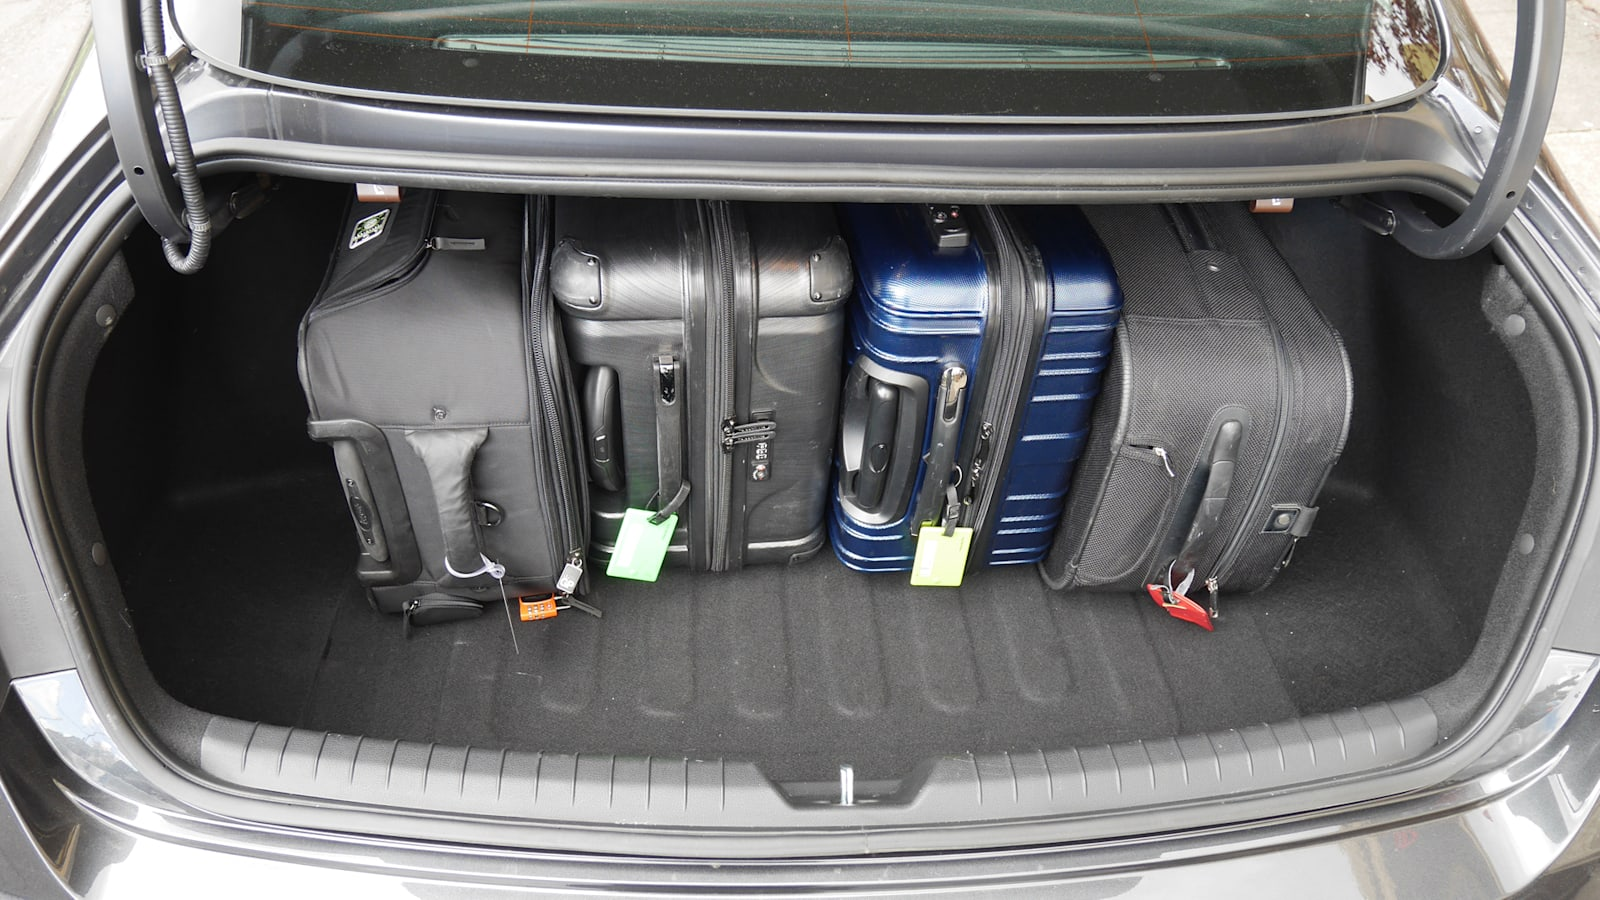 2020 Hyundai Sonata Luggage Test | How much fits in the trunk?